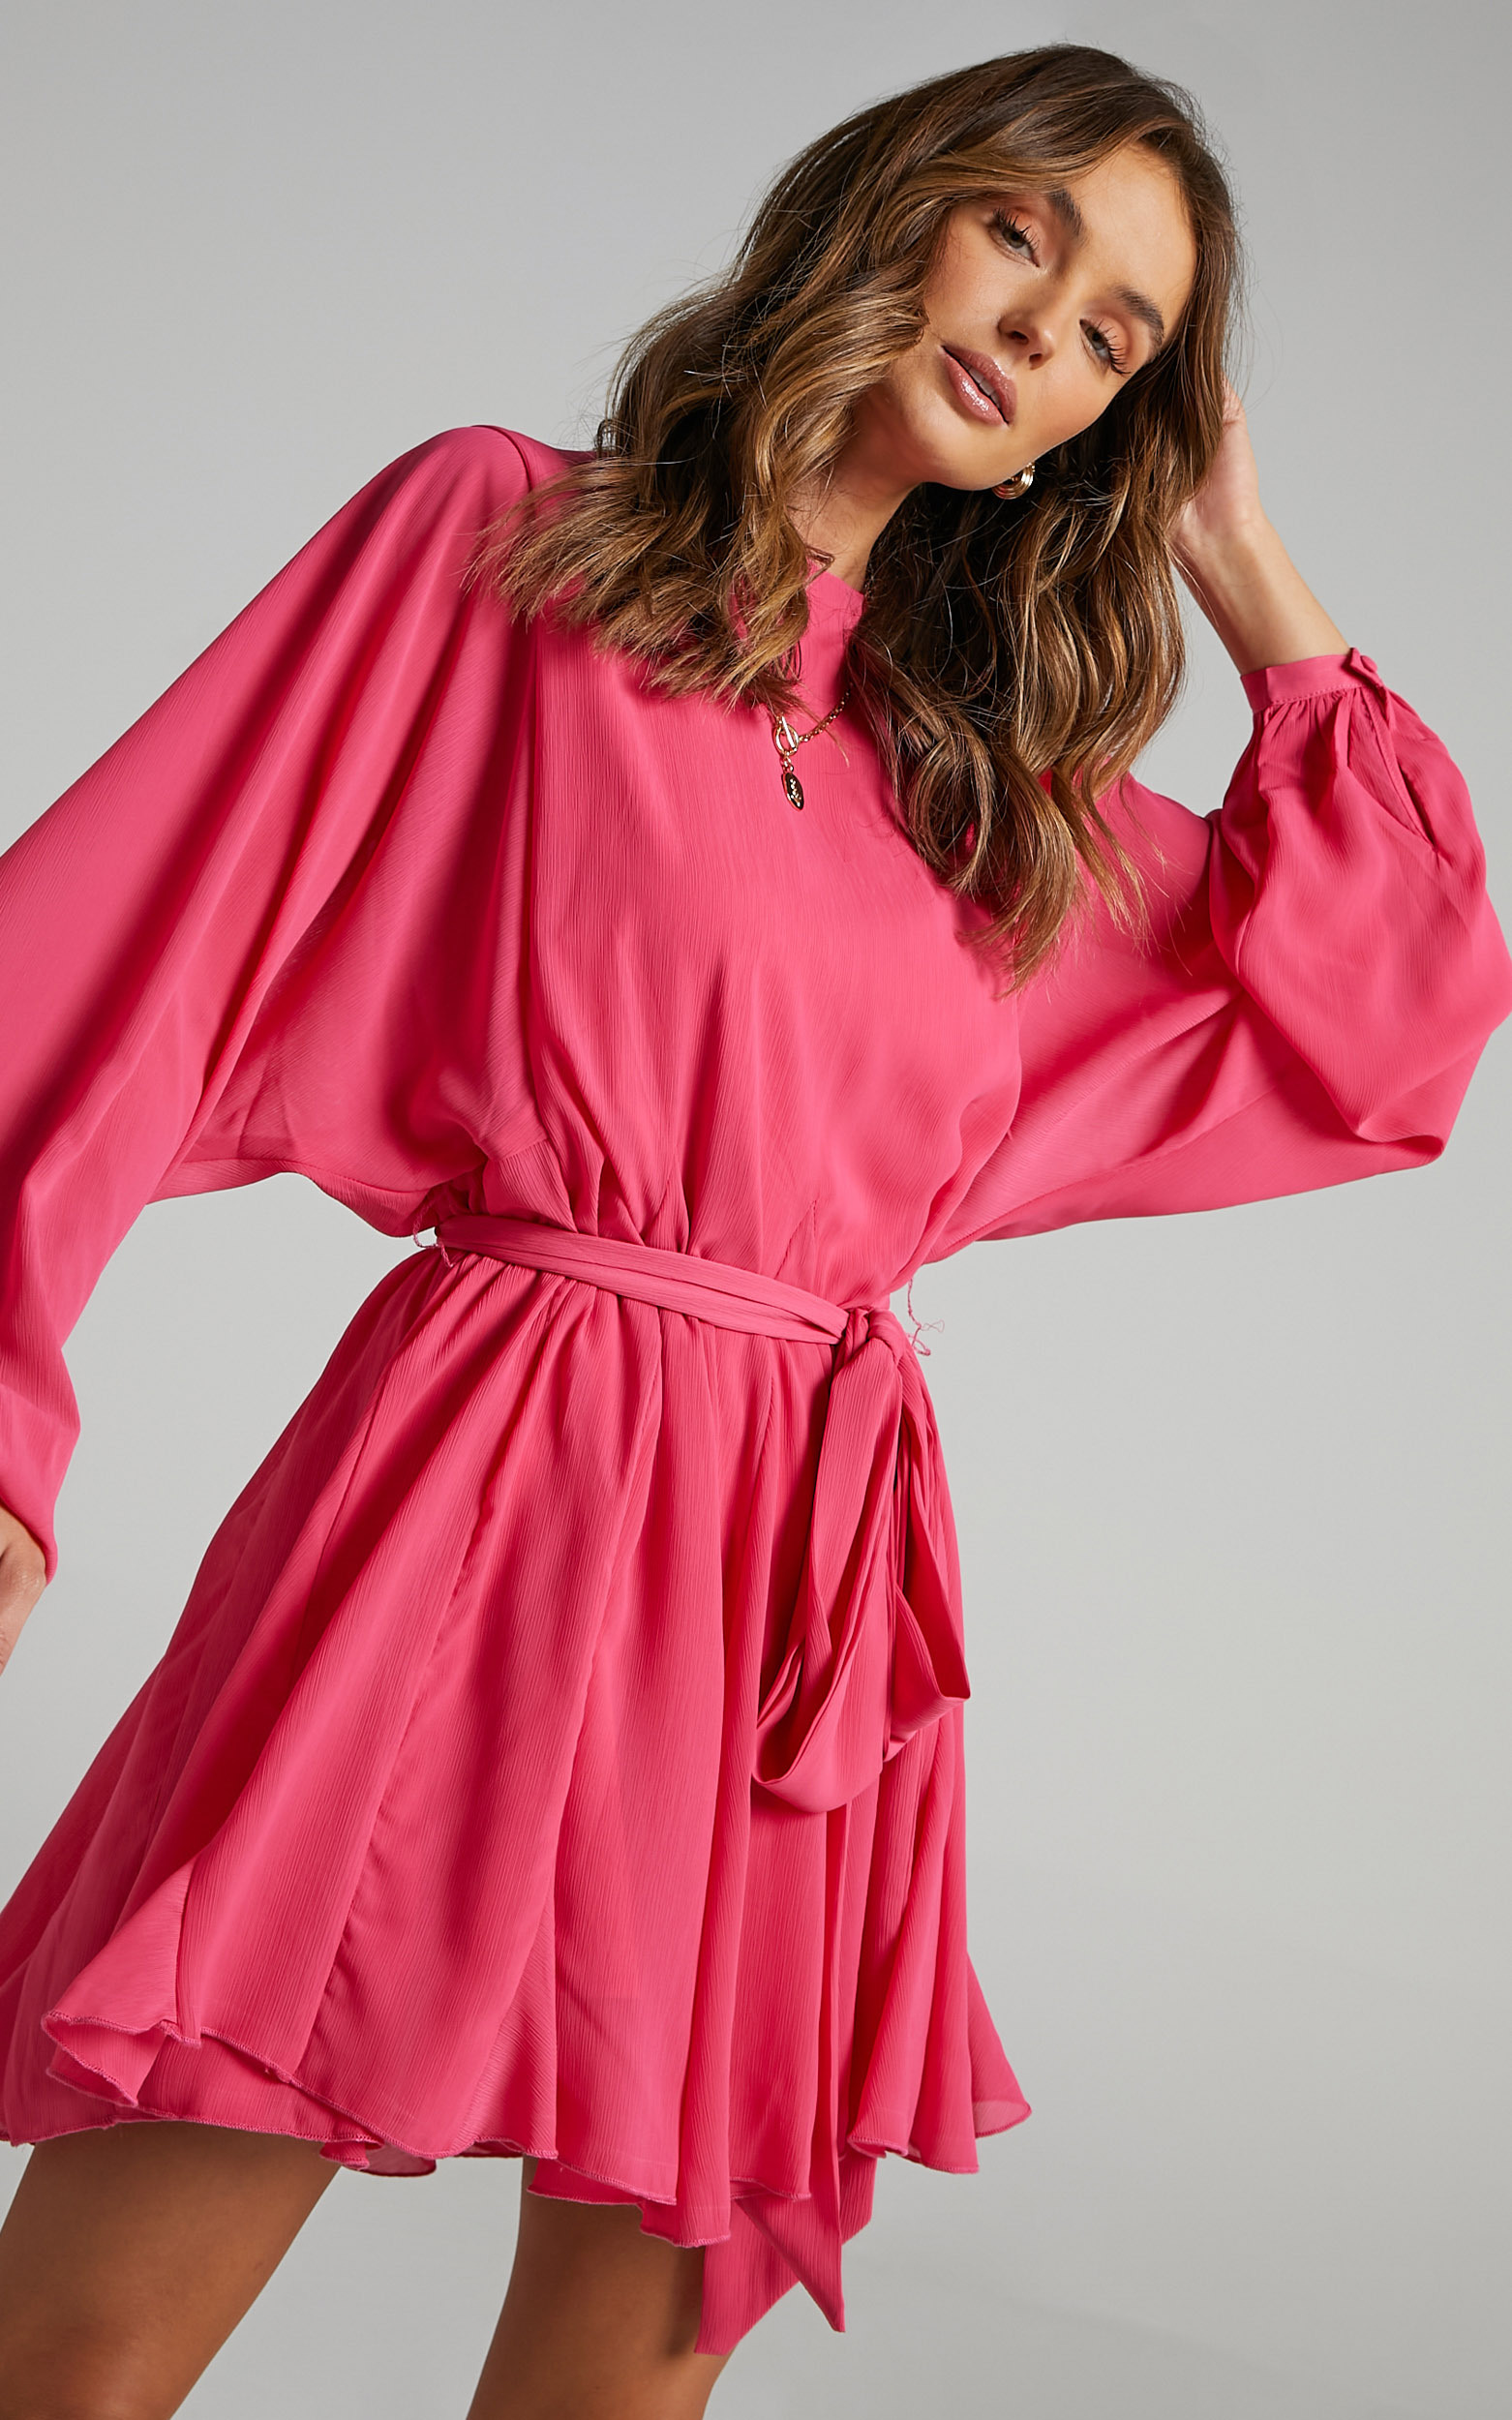 Ancora Tie Front Longsleeve Mini Dress in Pink - 06, PNK1, hi-res image number null